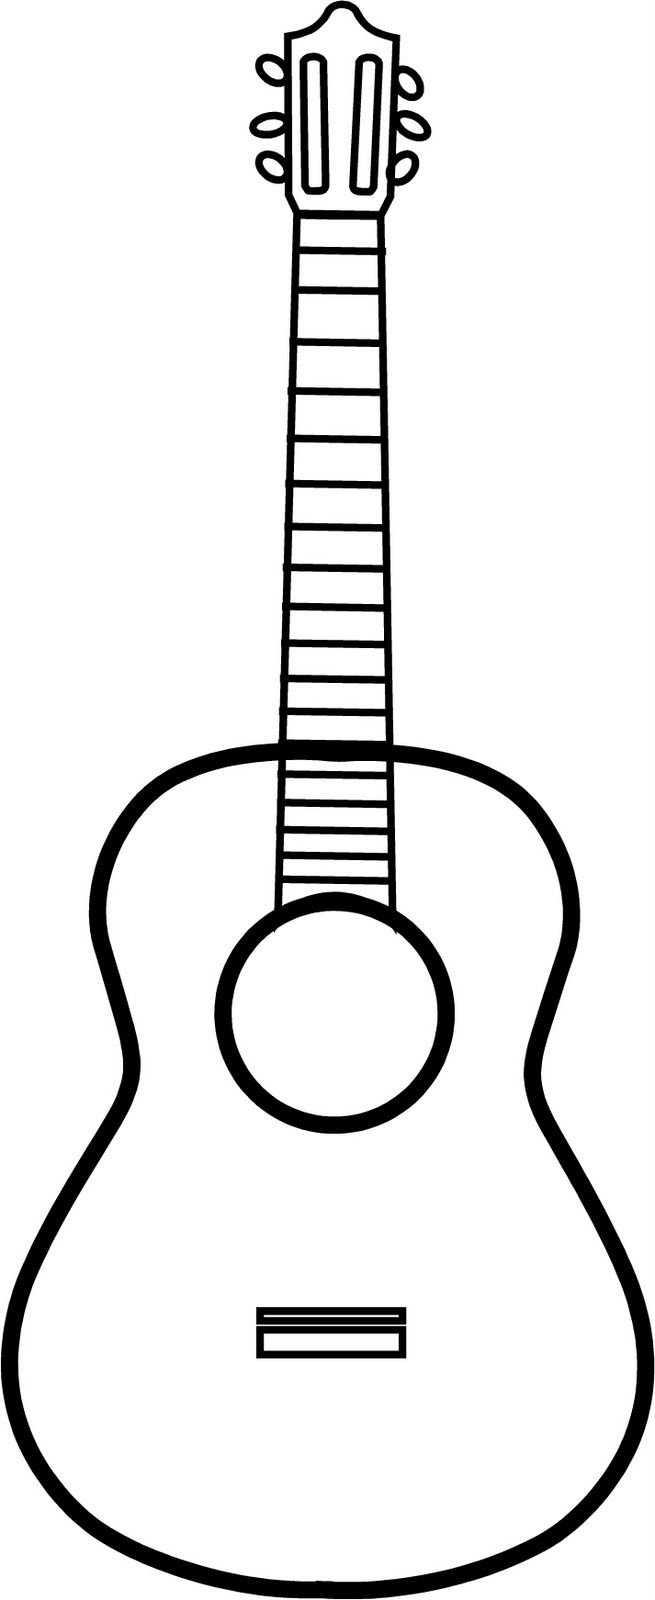 1000+ ideas about Guitar Crafts on Pinterest.